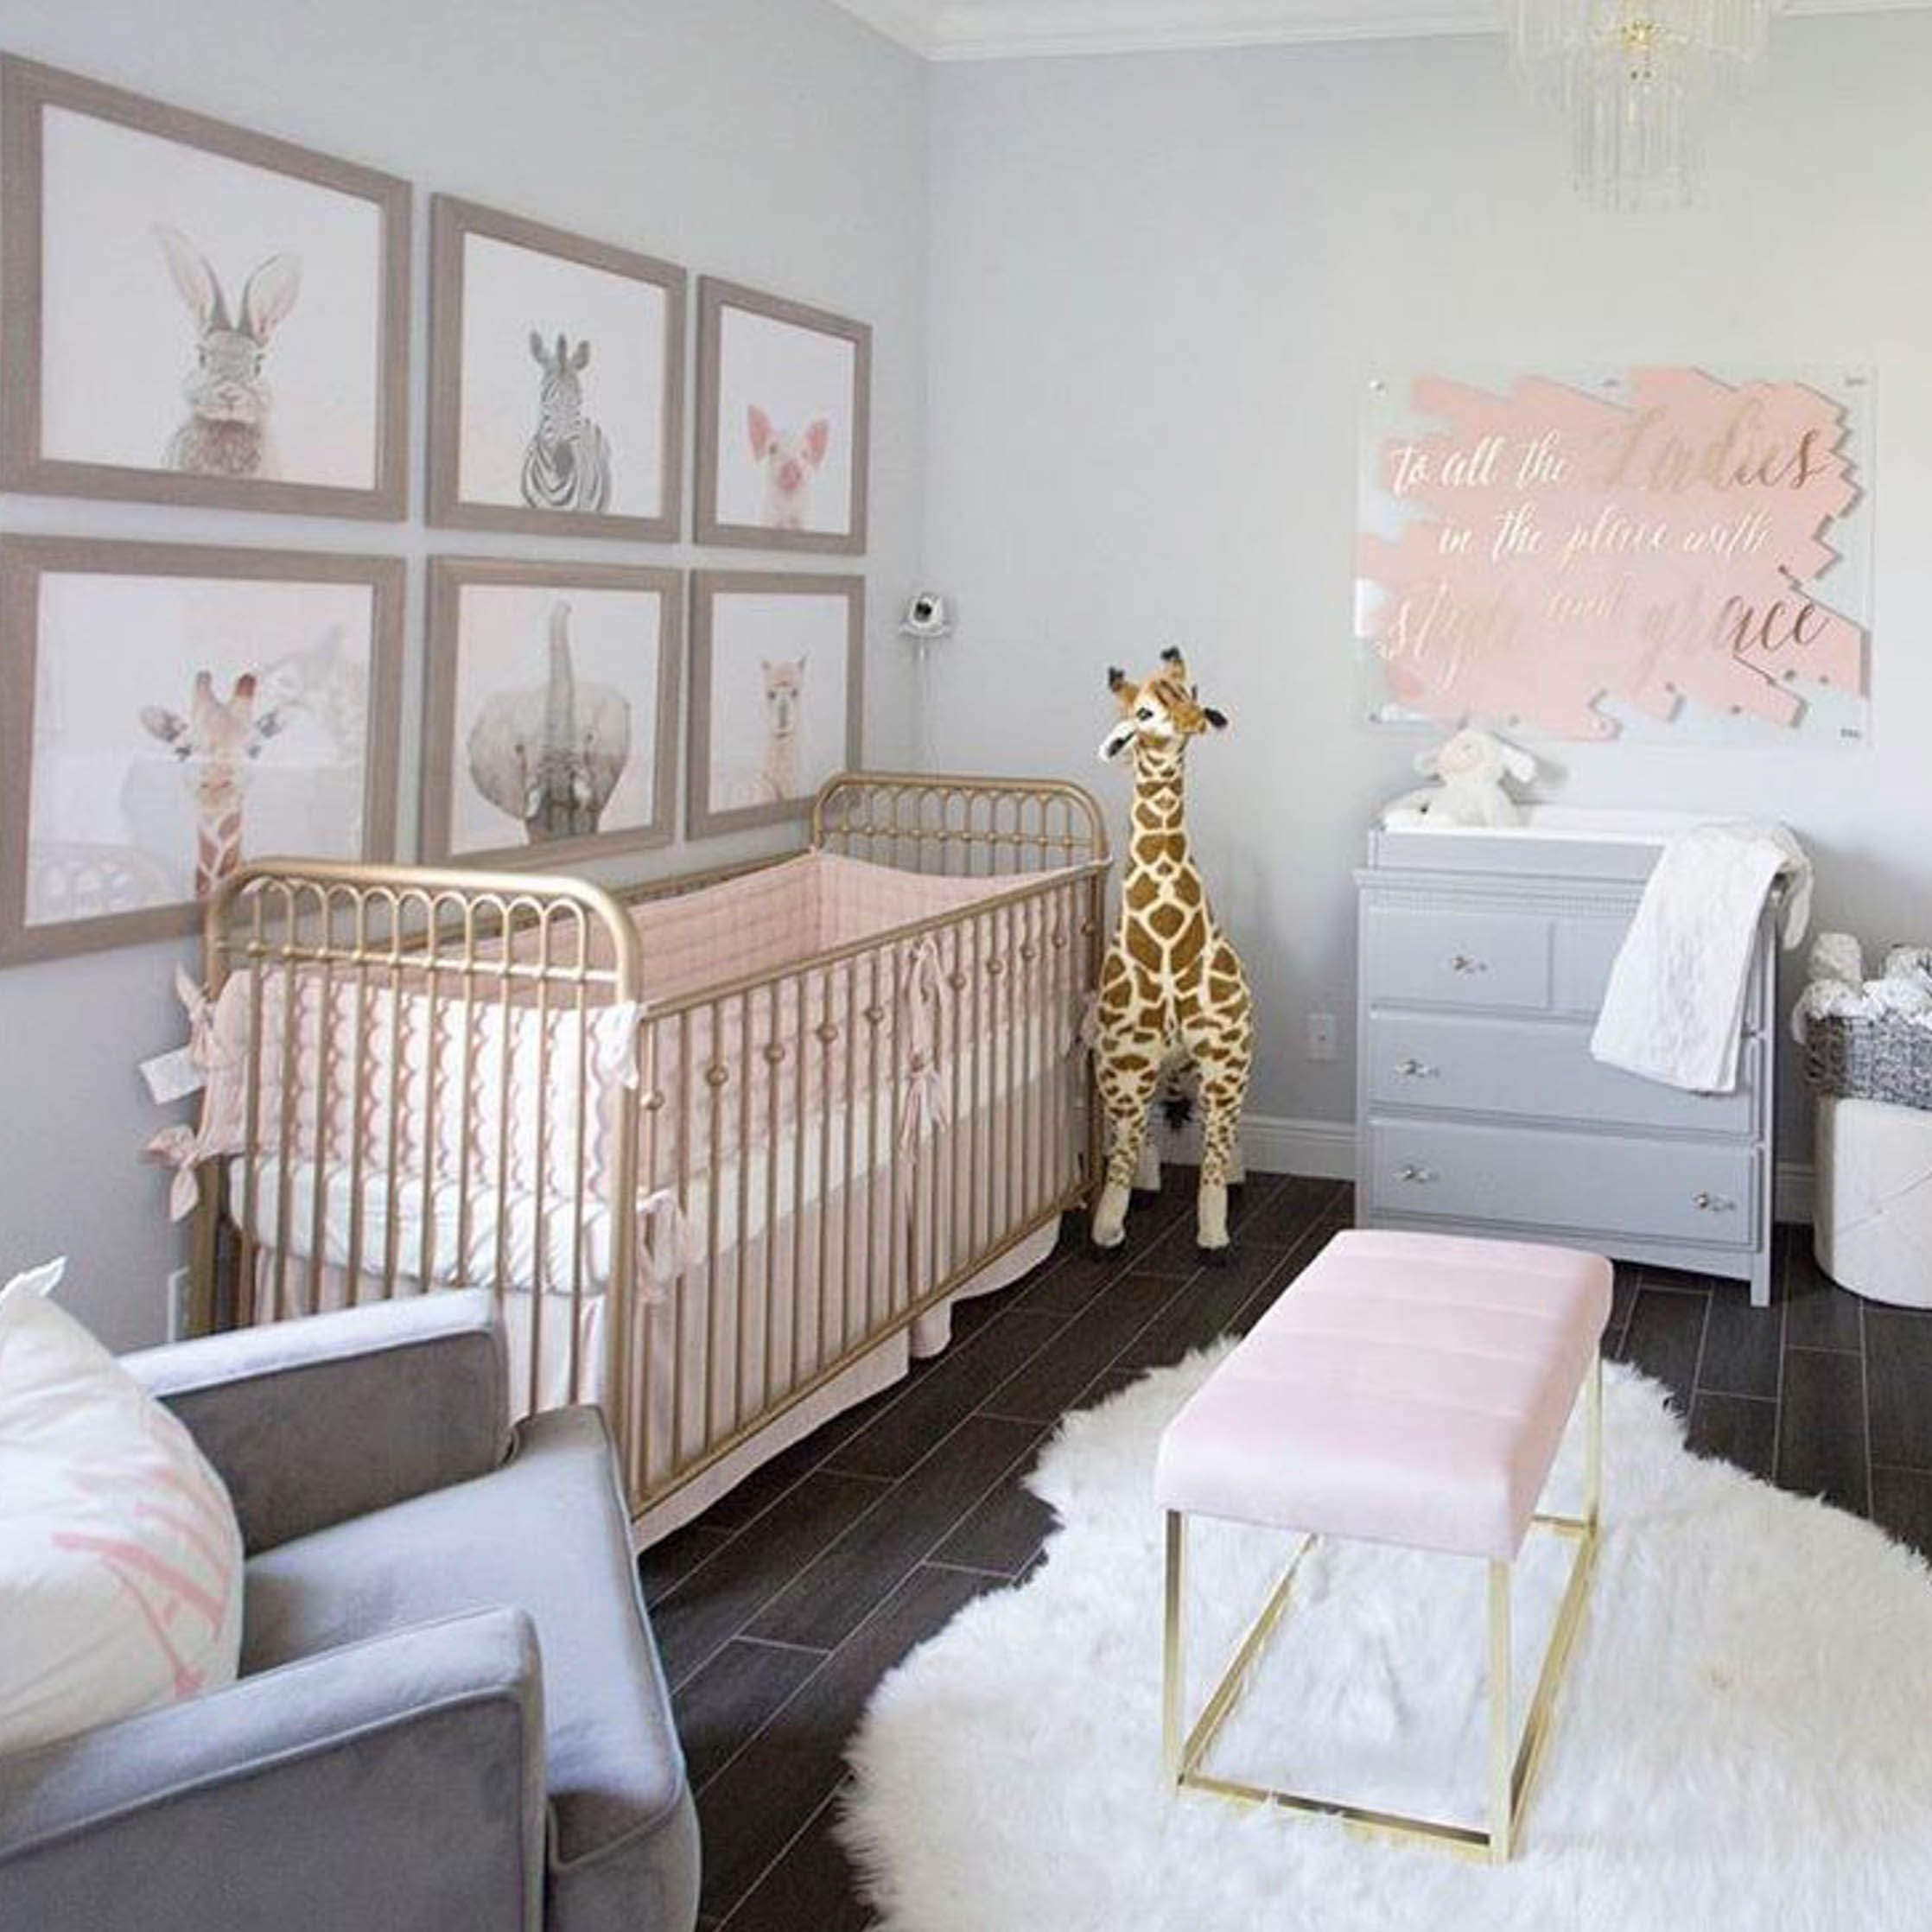 Pink, gold and gray baby girl nursery